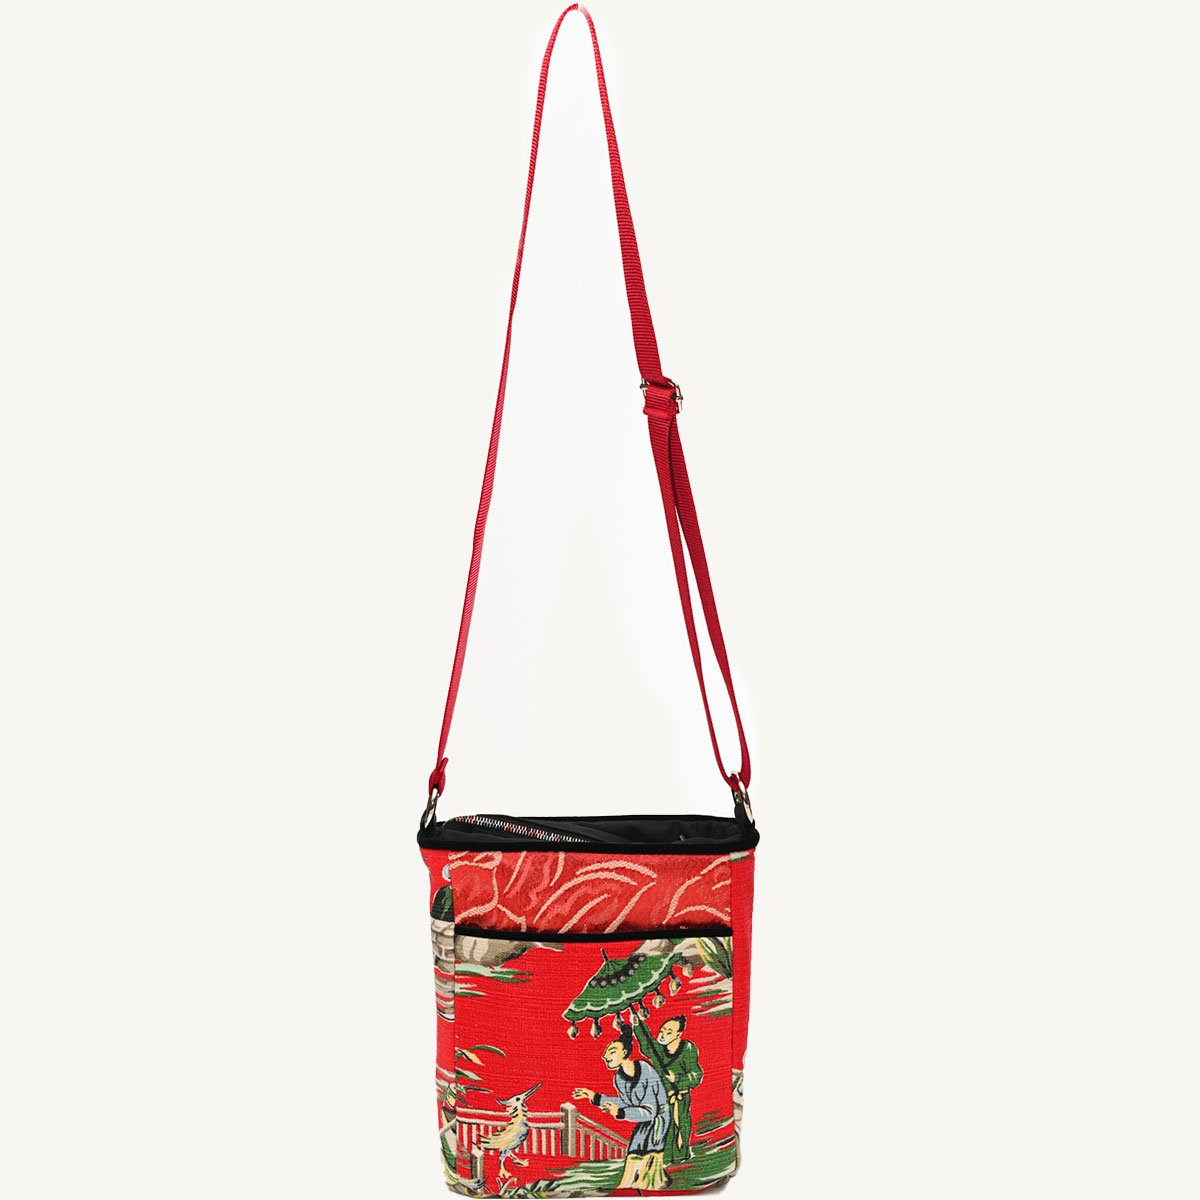 crossbody bag asian motif on cherry red DSC 6536